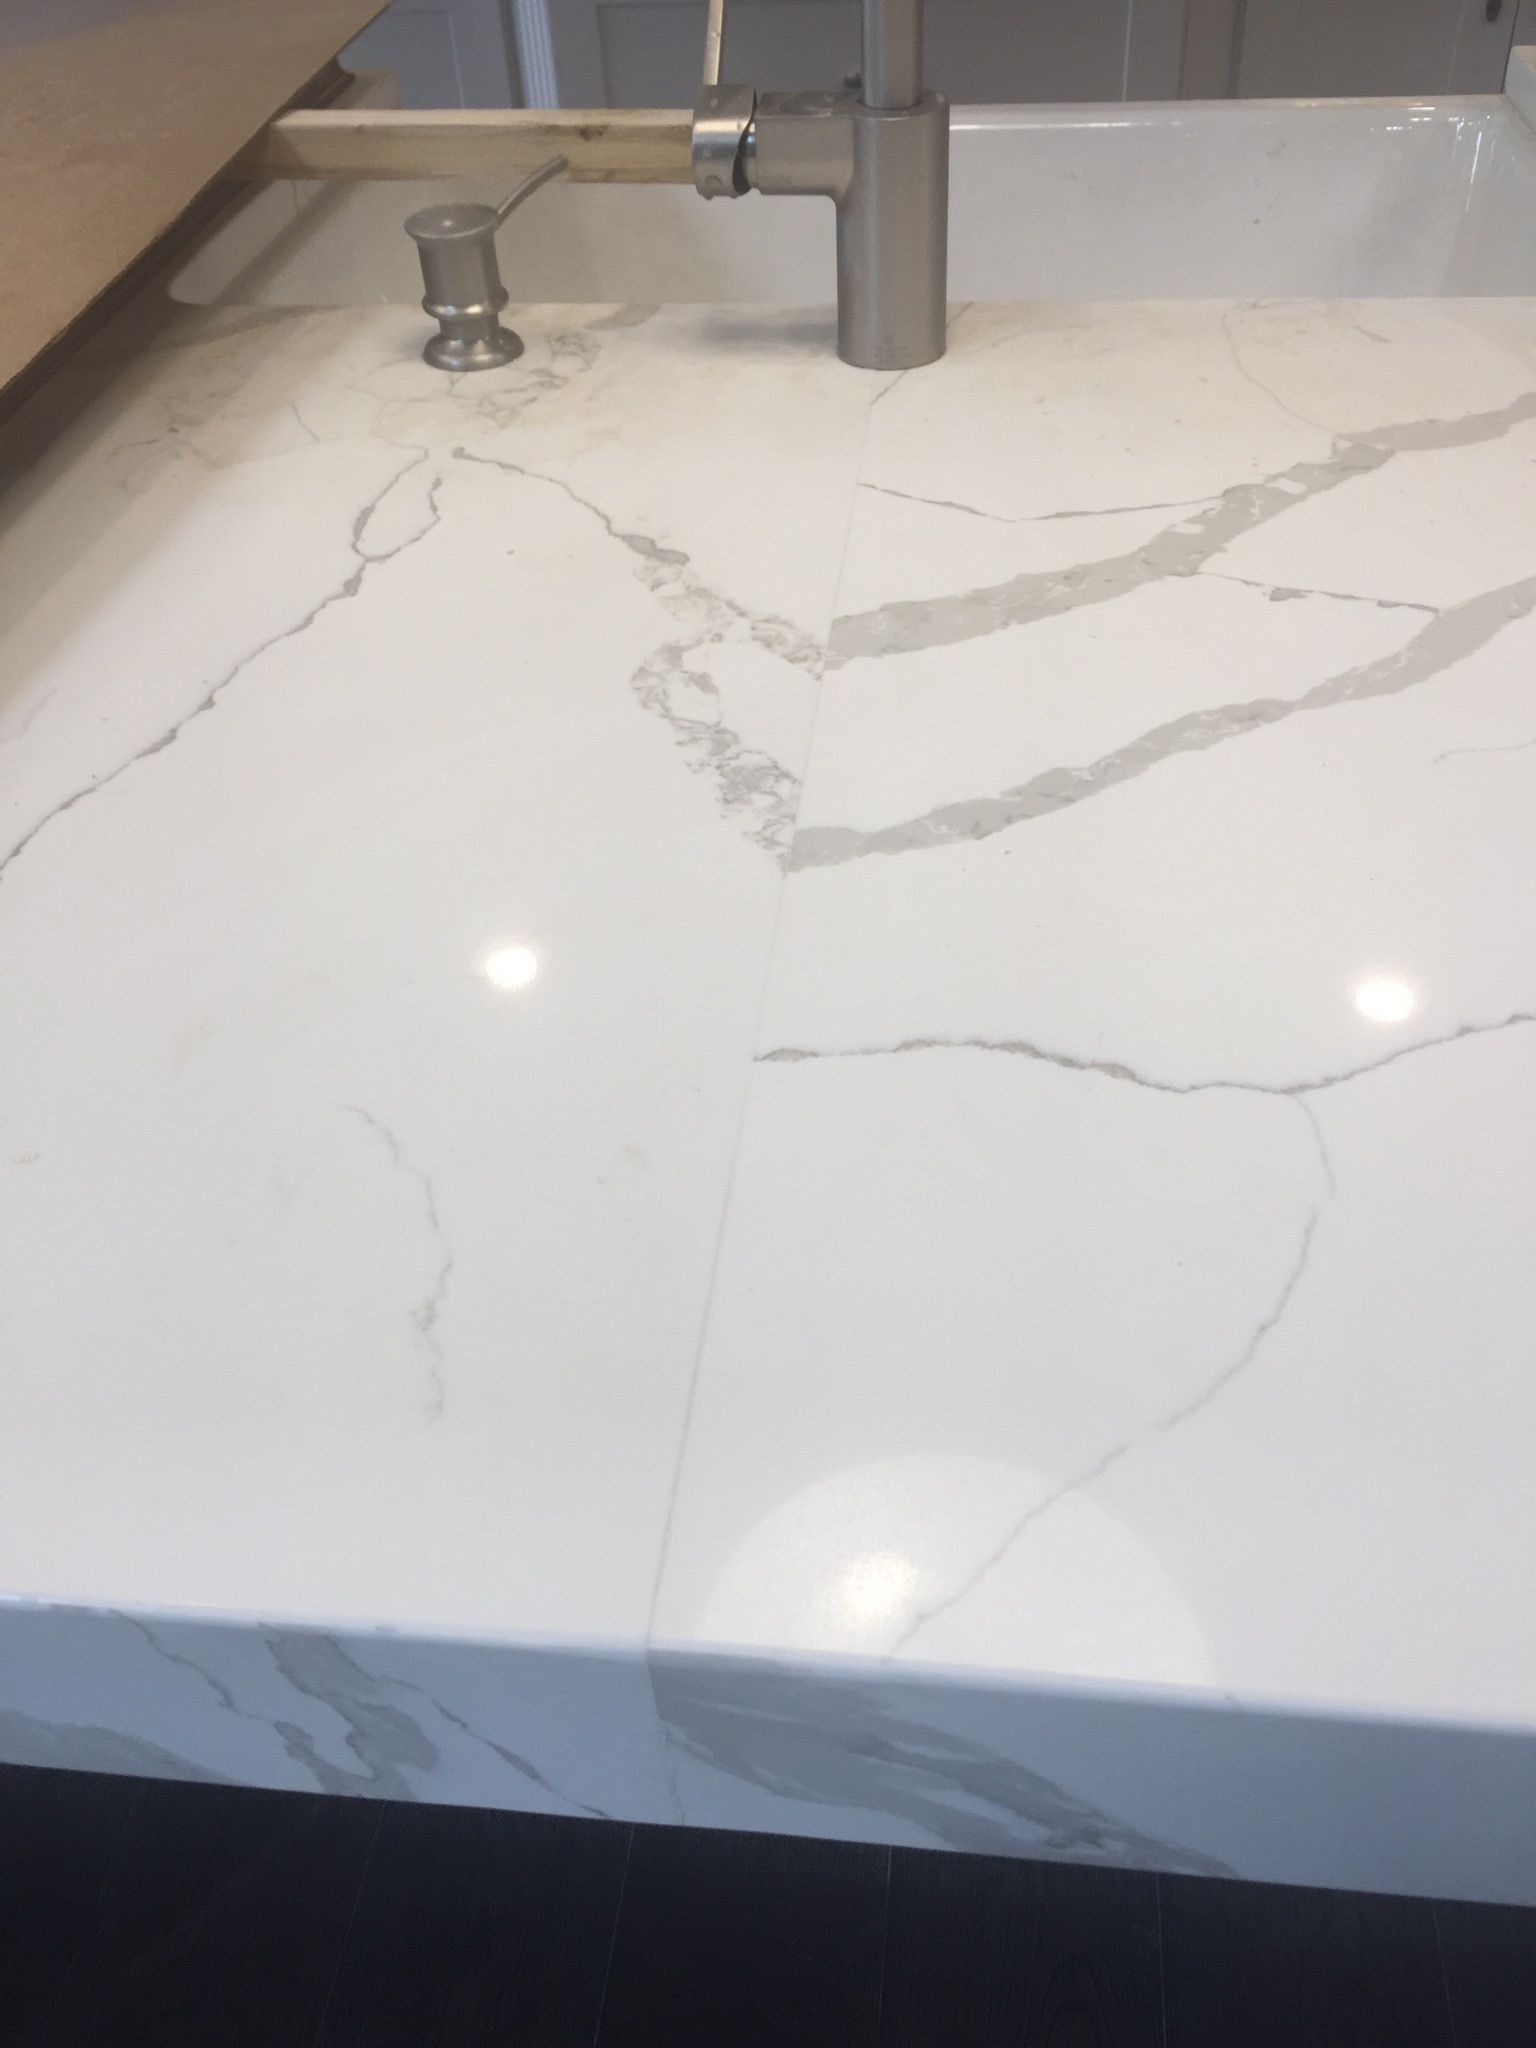 Calacatta laza quartz seam in island solid surface for Seamless quartz countertops